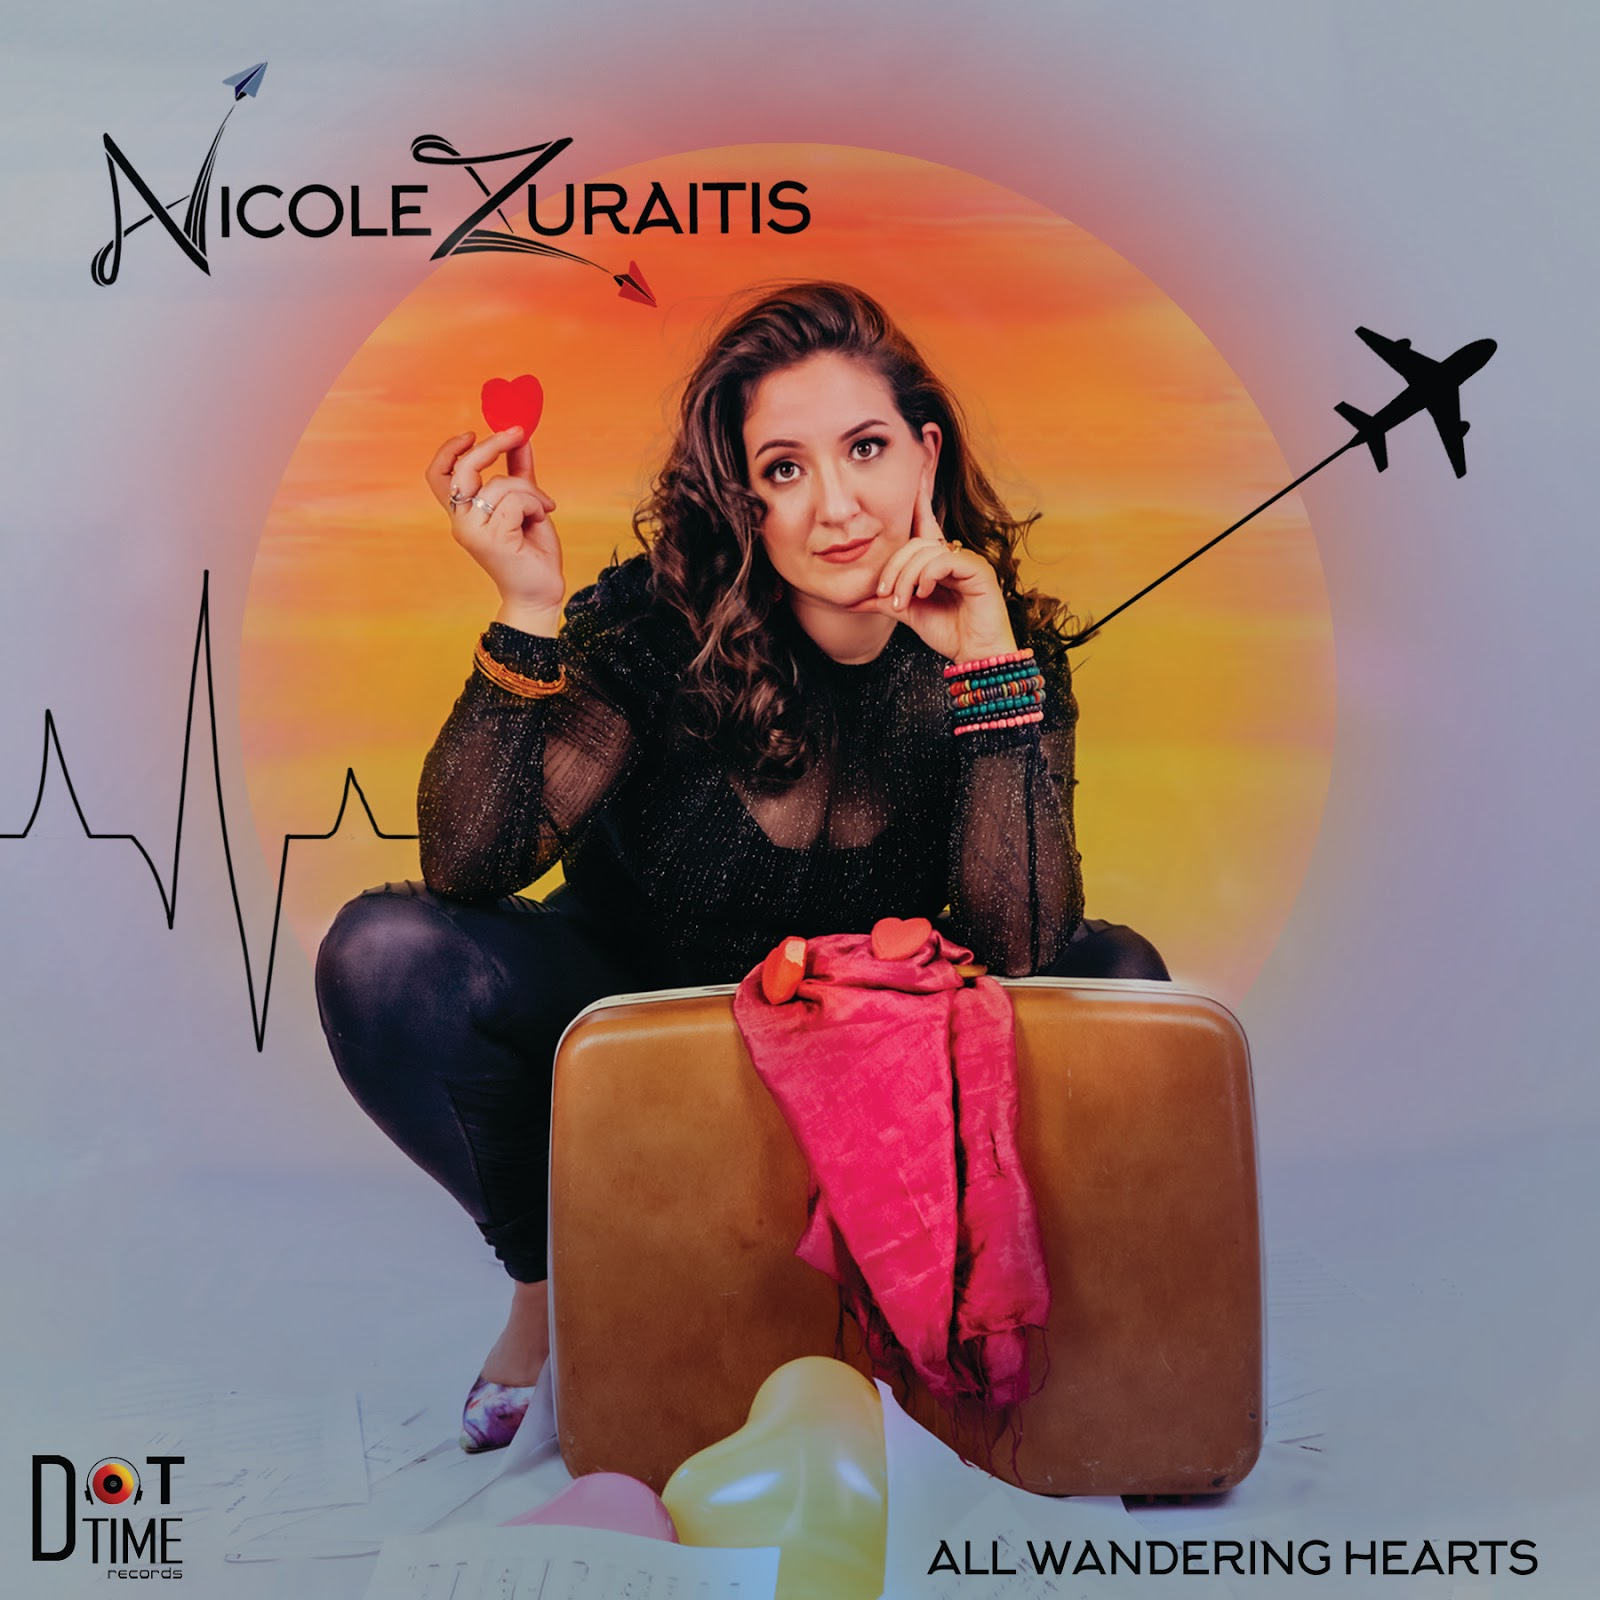 NEW RELEASE: 'All Wandering Hearts' to be Released on July 31st by Grammy® Nominated Dot Time Recording Artist Nicole Zuraitis